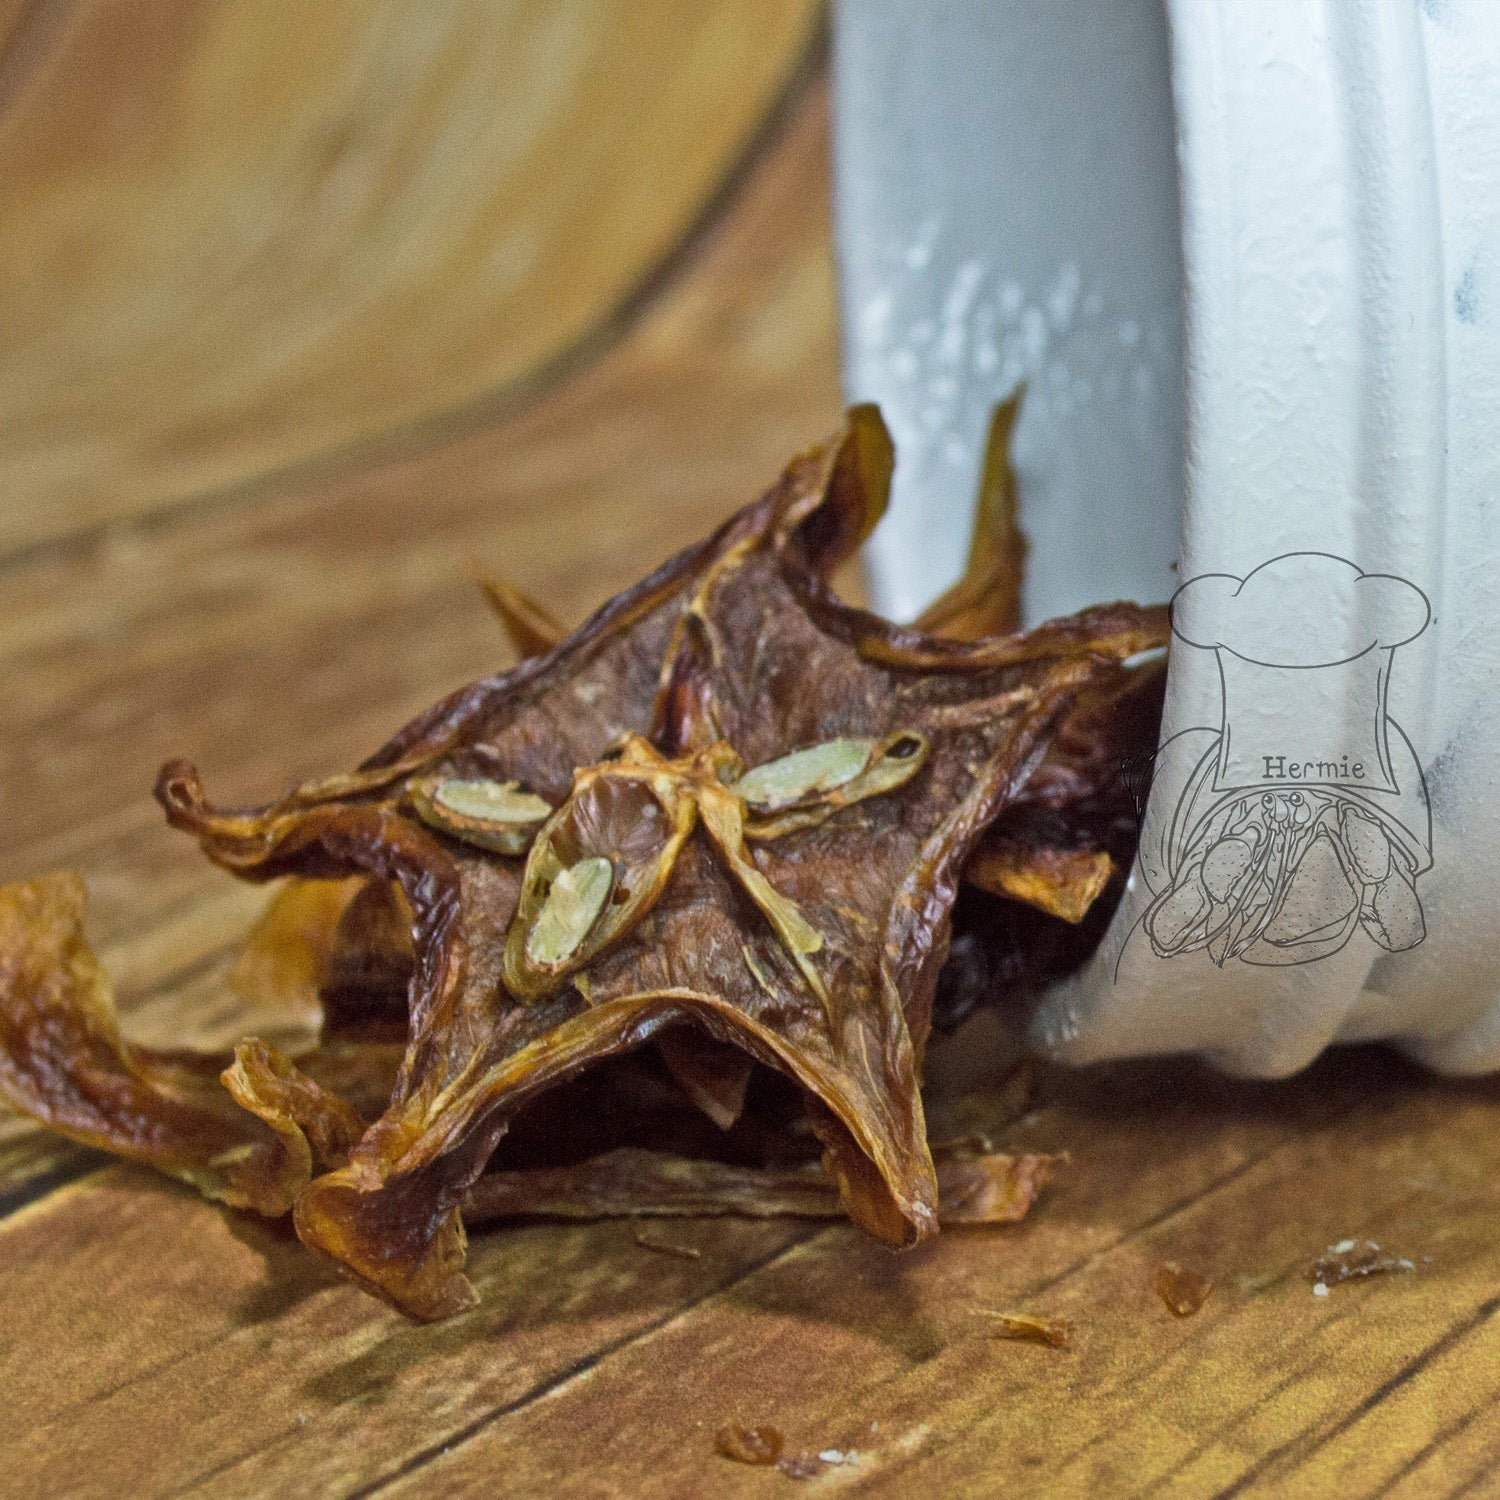 Star Fruit │ Hermit Crab Food